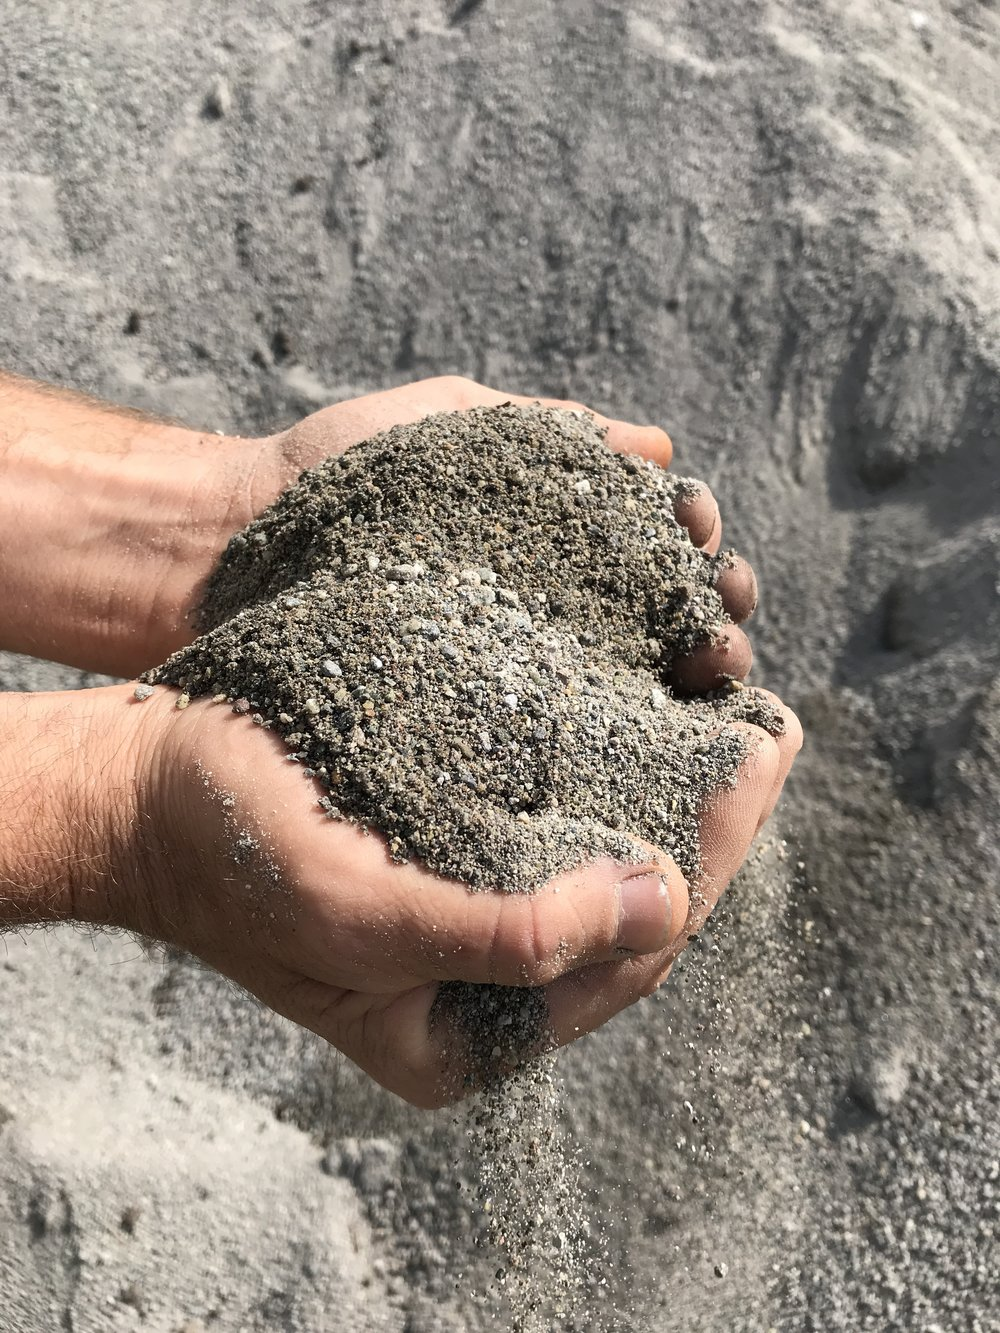 WASHED SAND - This washed sand, or construction sand, is a combination of course grain and fines and is often used to fill space between paving stones. It can also be used for sand boxes. $30.00 per yard$18.00 per half yard$ 5.00 per pail